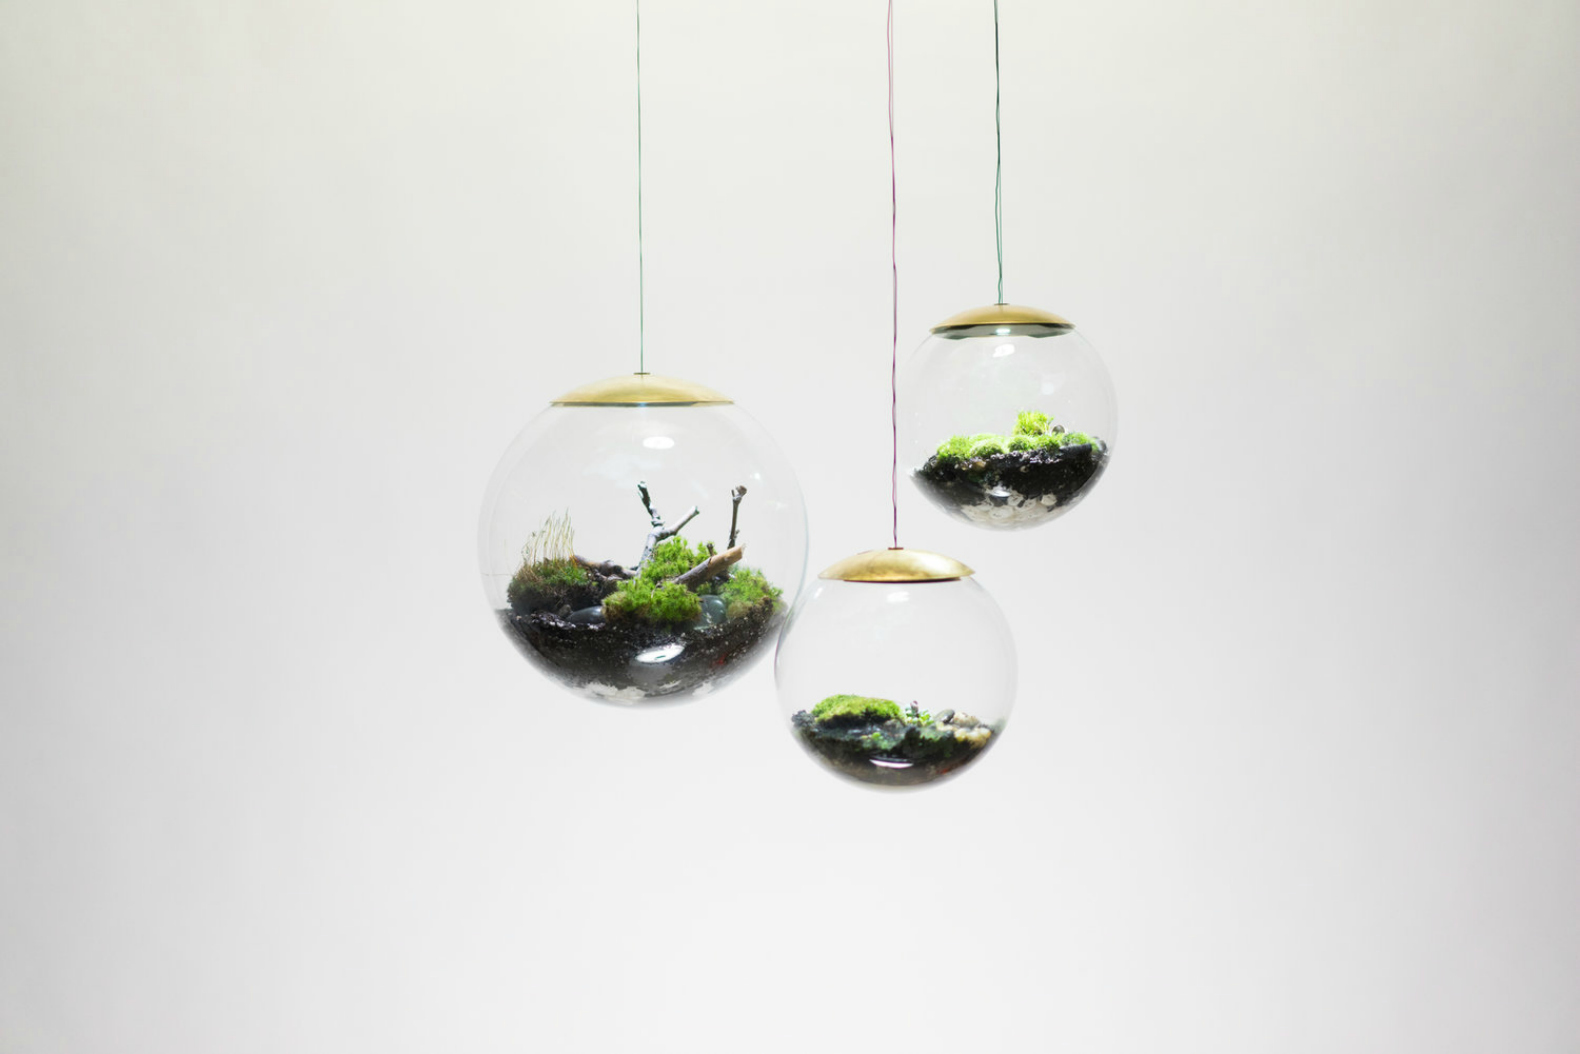 These amazing terrarium lamps grow plants in even the